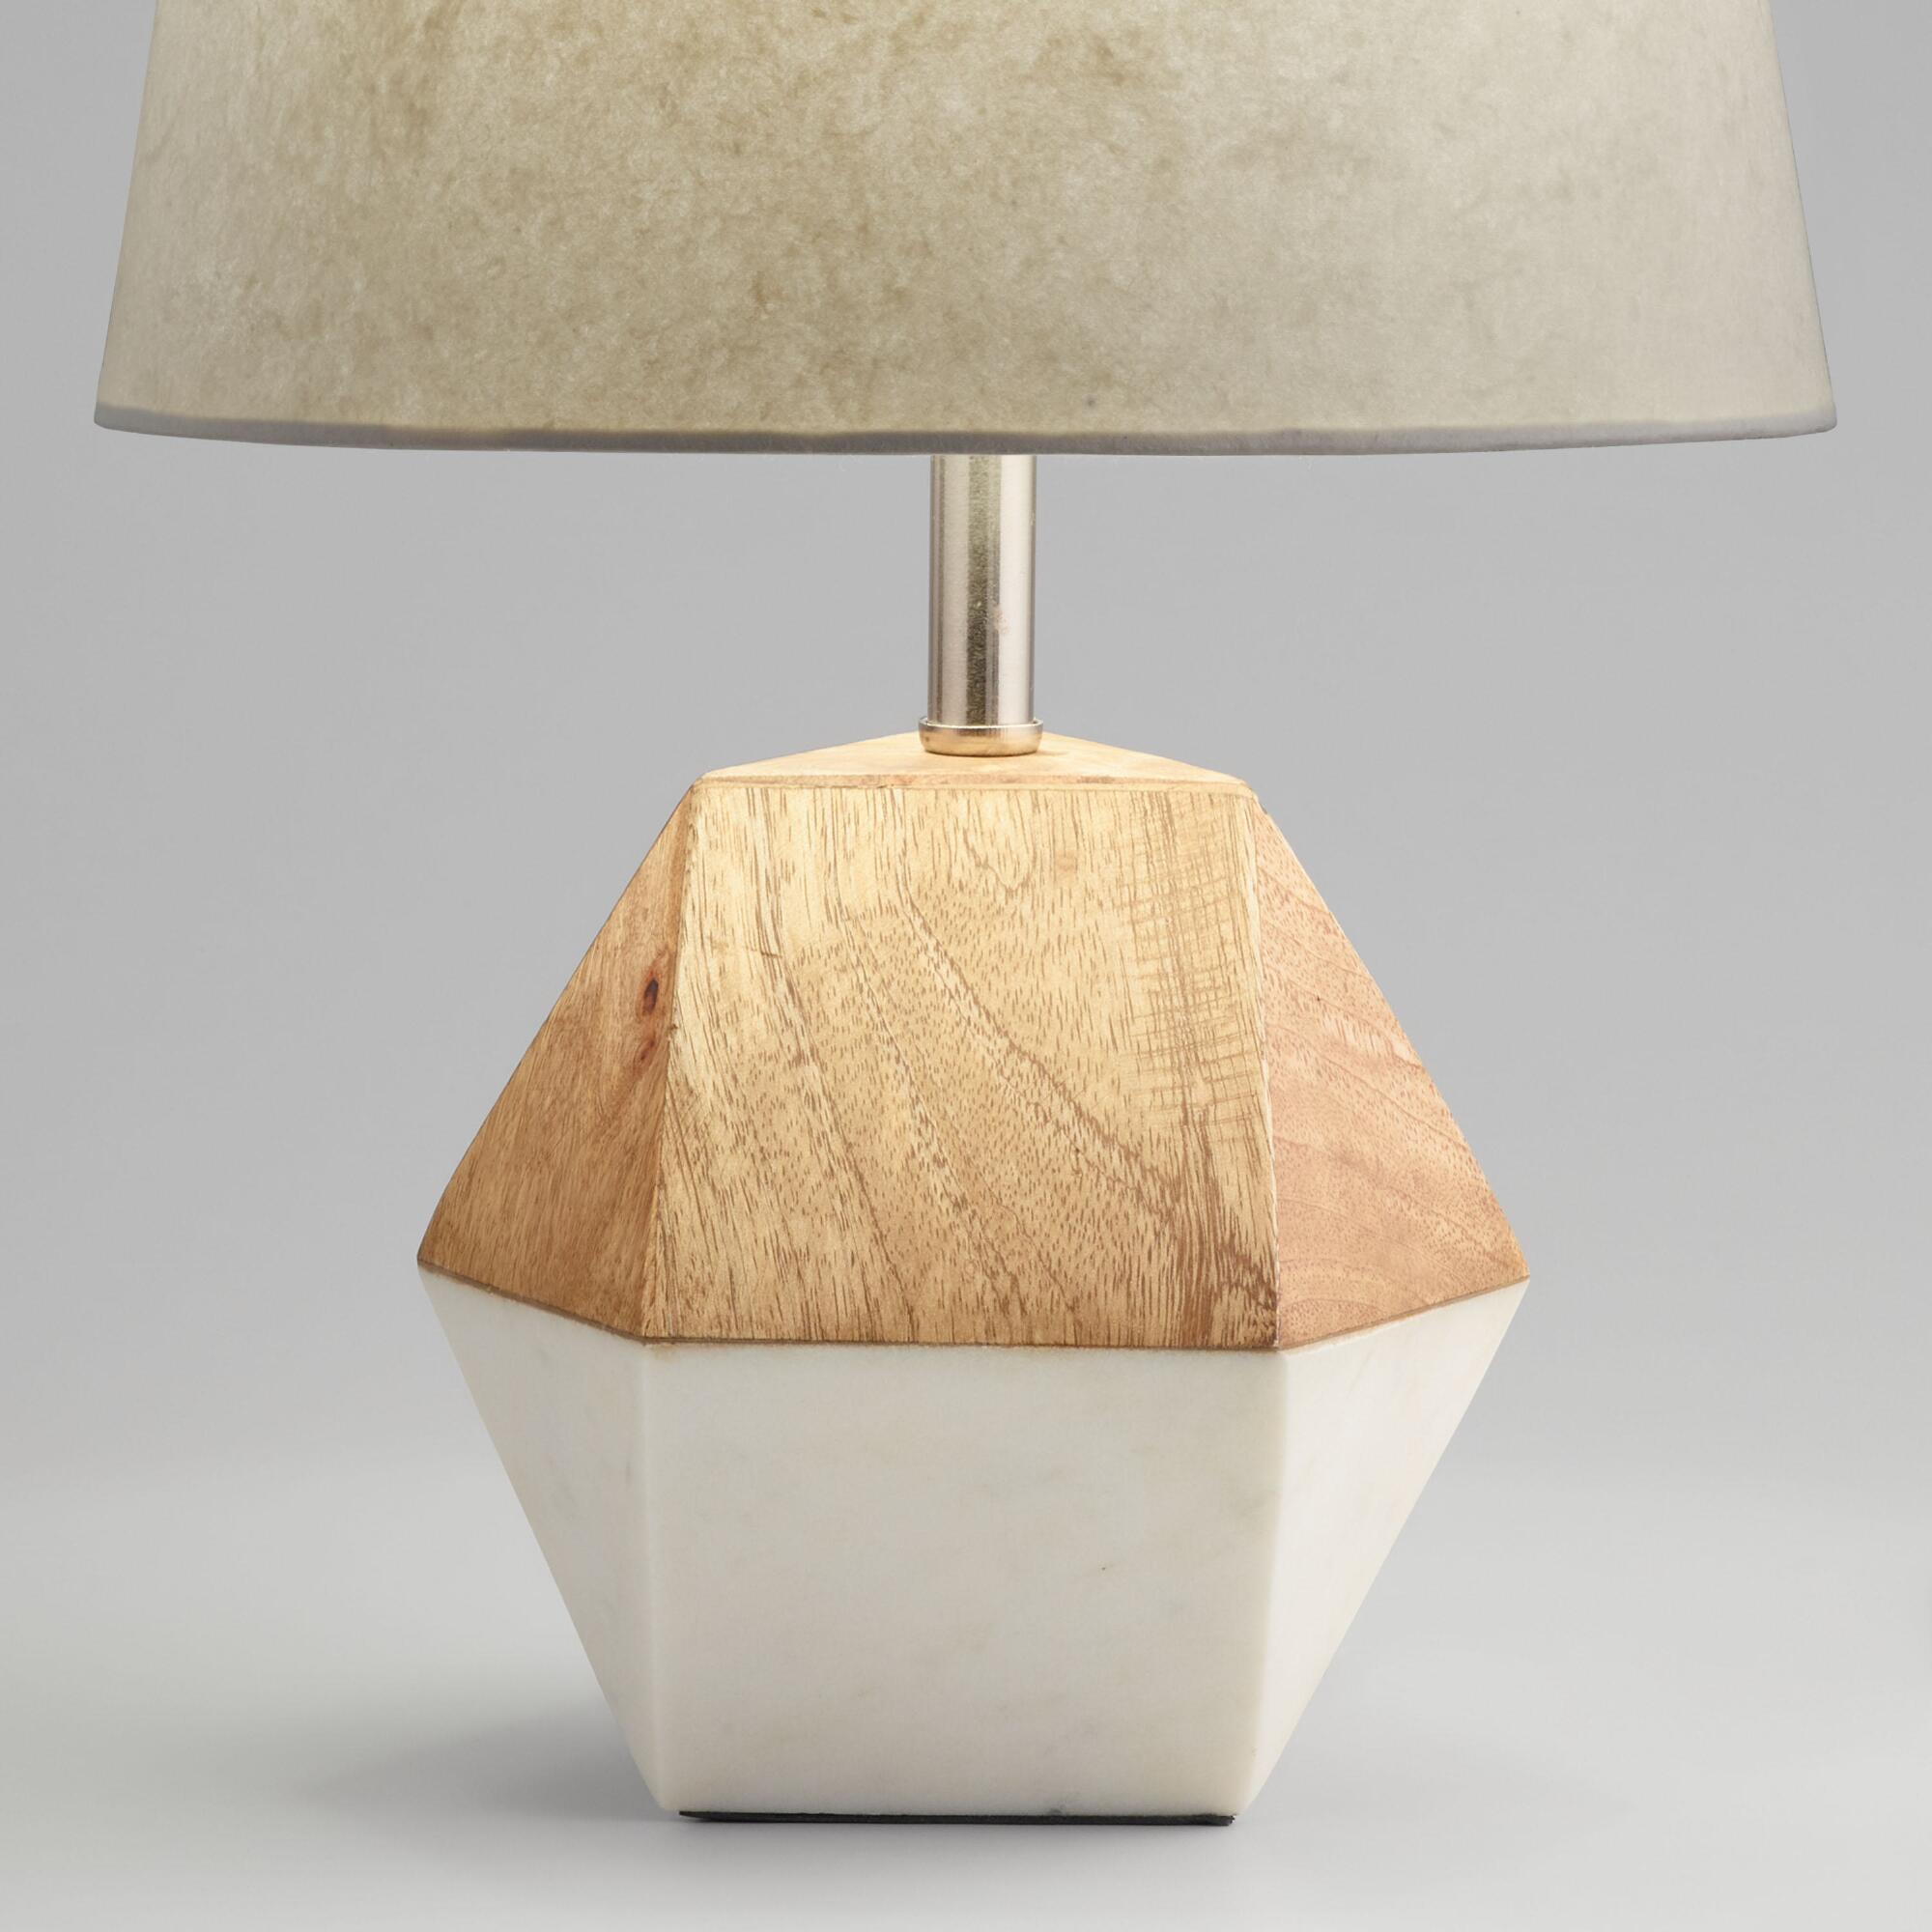 accent lighting unique table lamps world market iipsrv fcgi miniature white marble and wood liam lamp base door designs for rooms dining clearance rattan coffee with storage